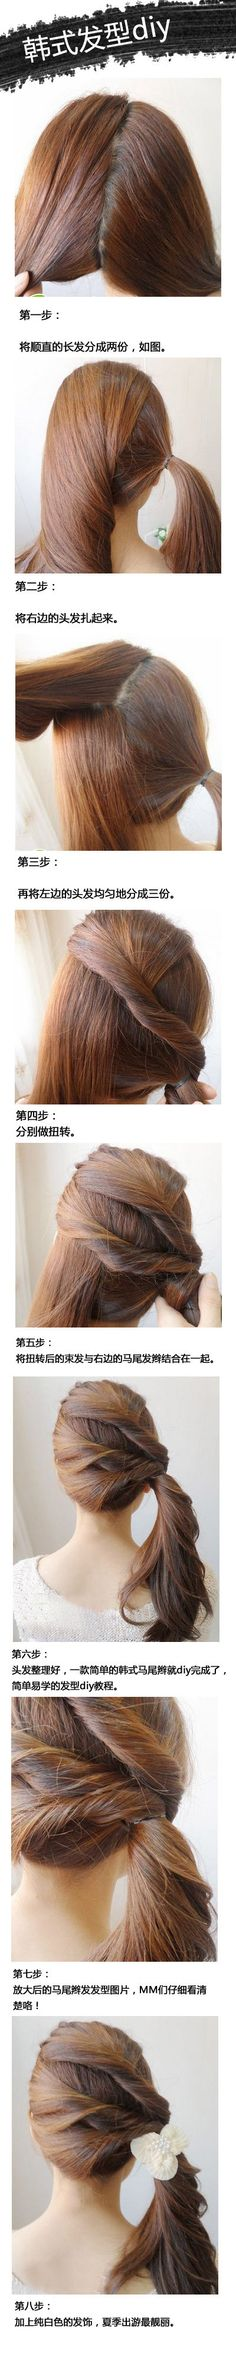 Korean style easy and beautiful hair idea... so intricate and pretty, NOT